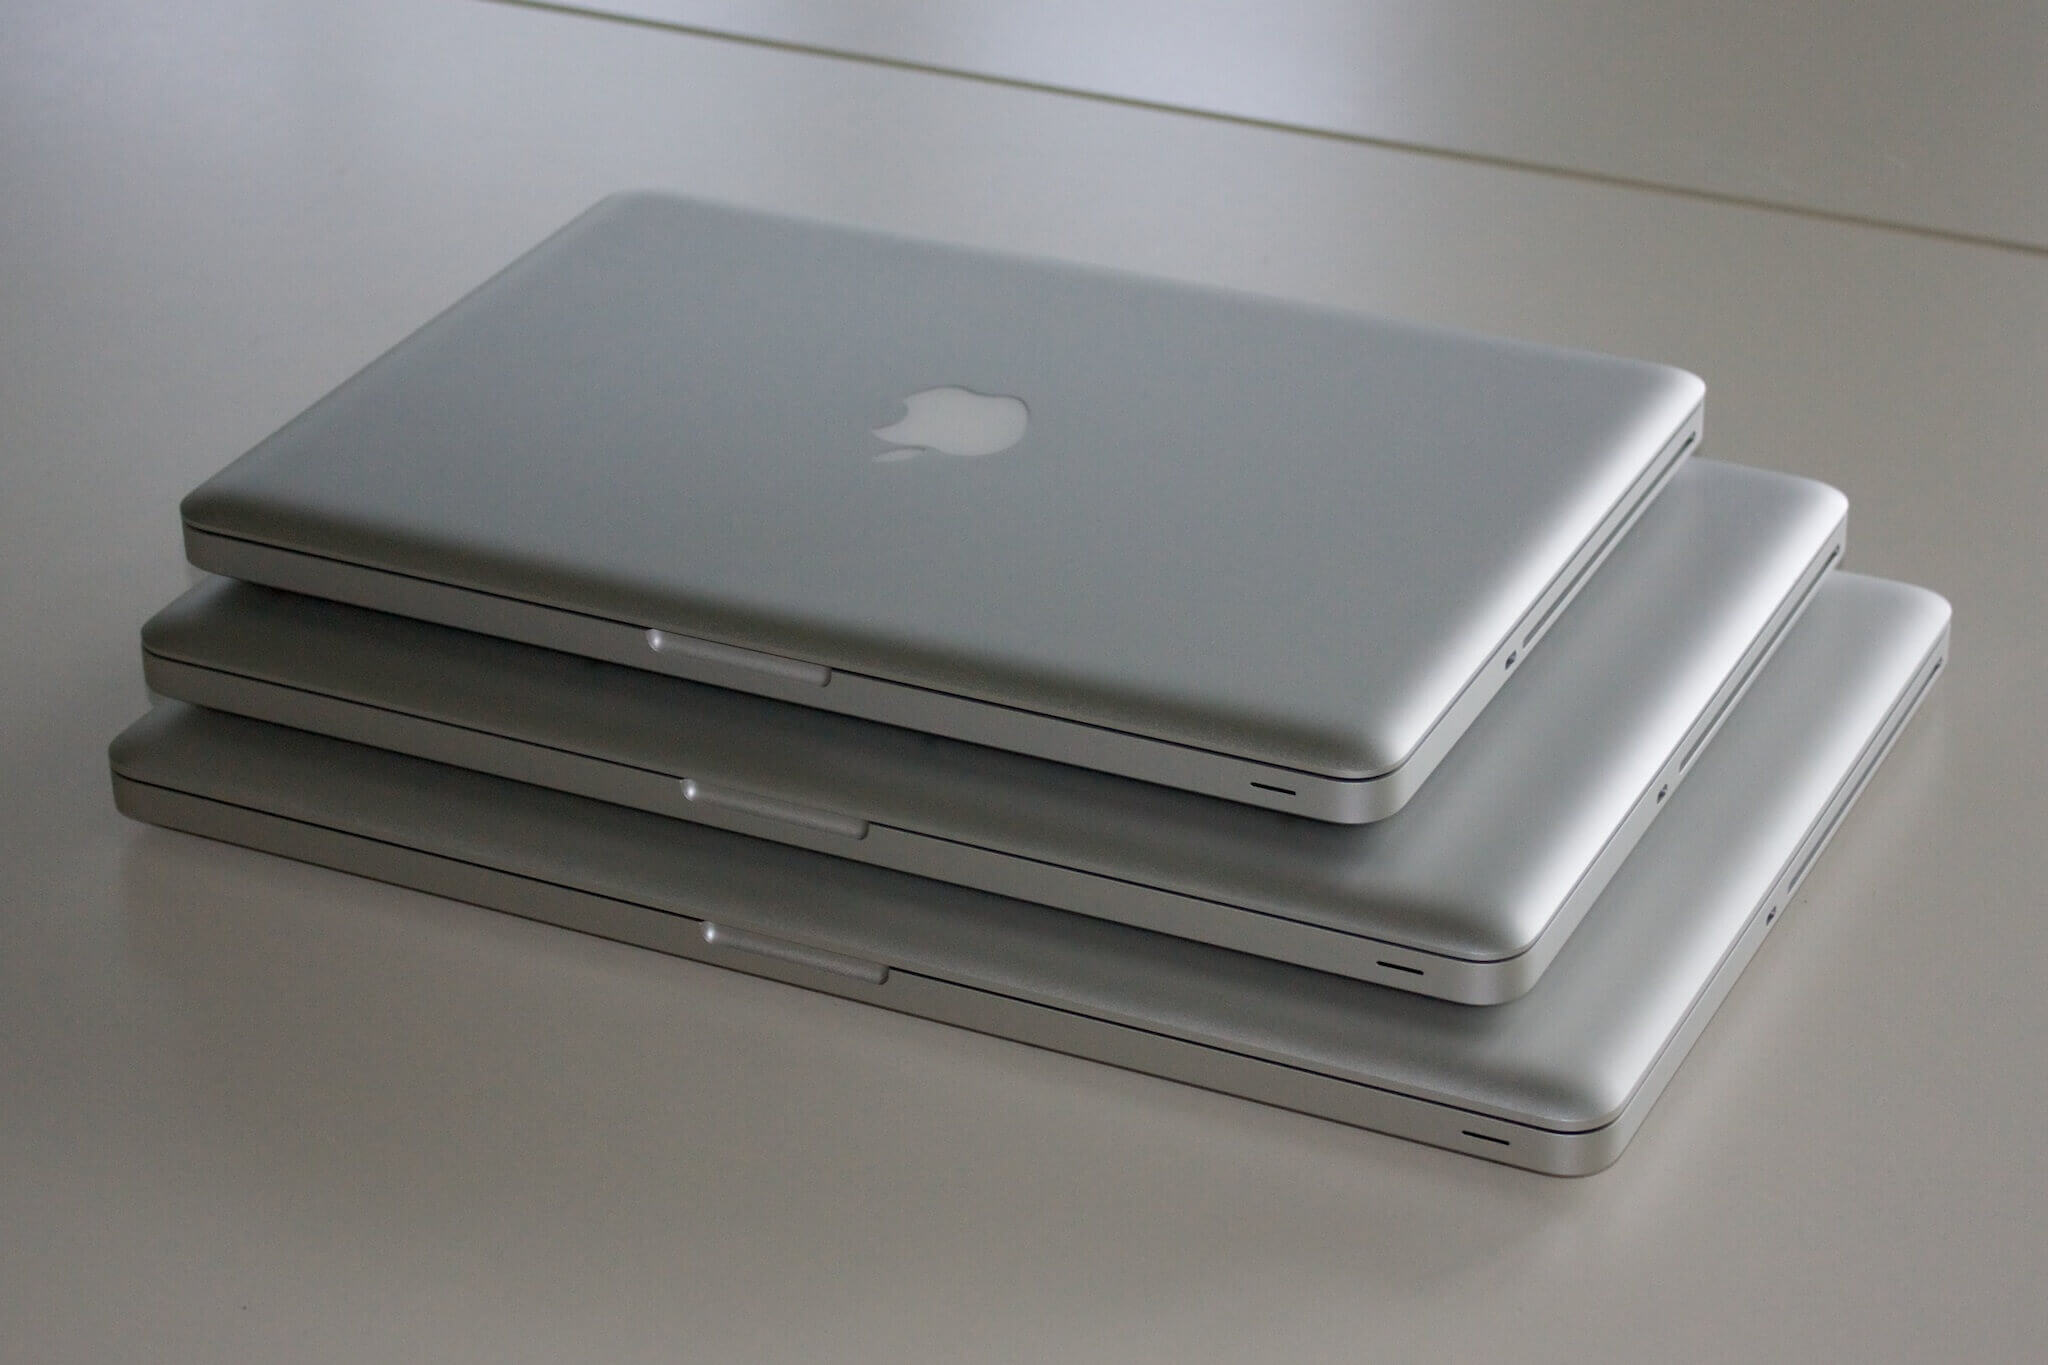 apple_macbookpros_13-15-17_stacked_08-2009